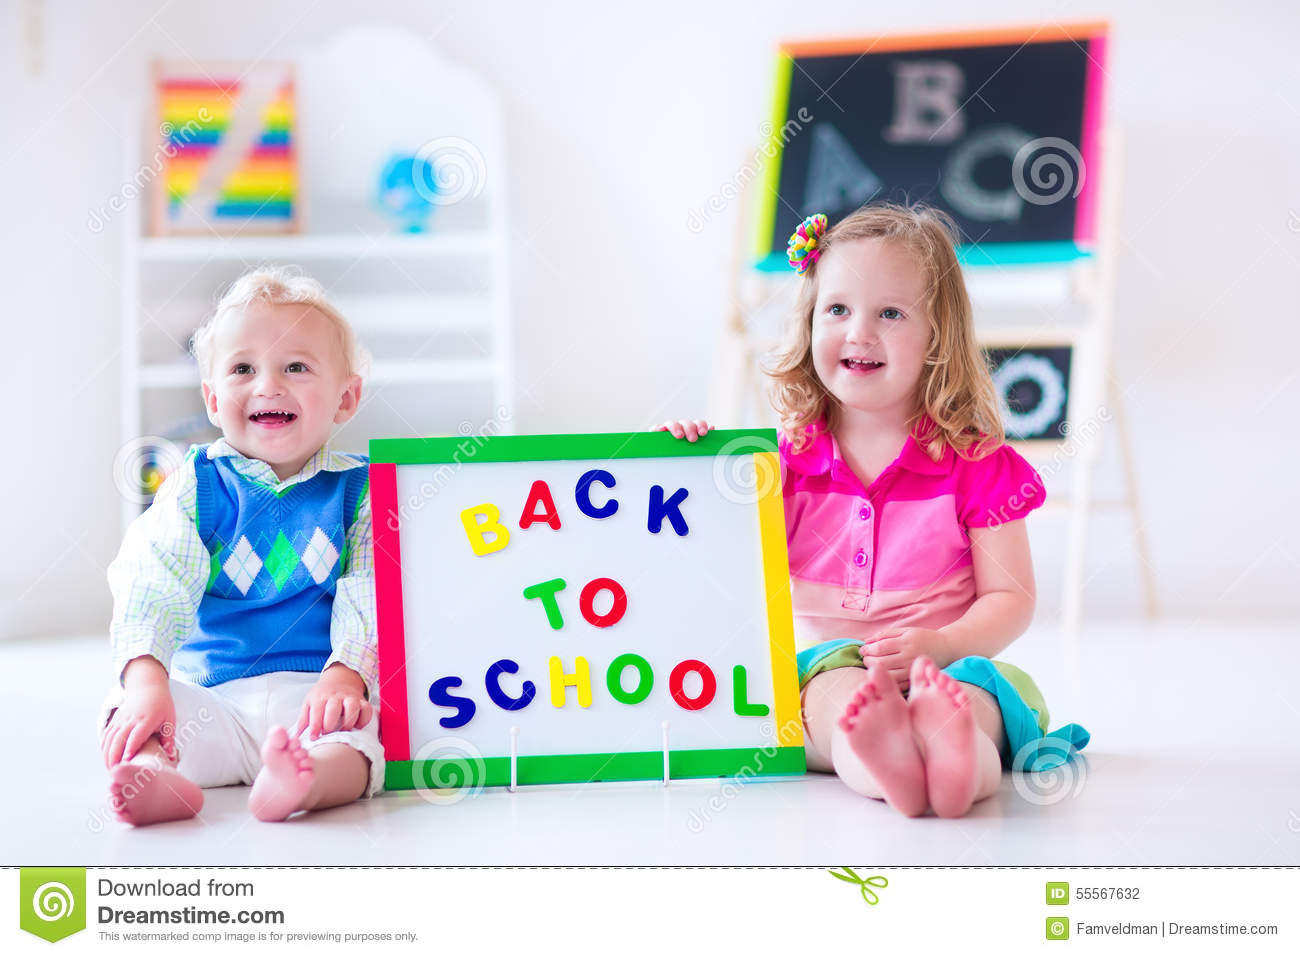 childcare nursery school and children Please contact delivery team on 0113 3200 750 if you have any queries.